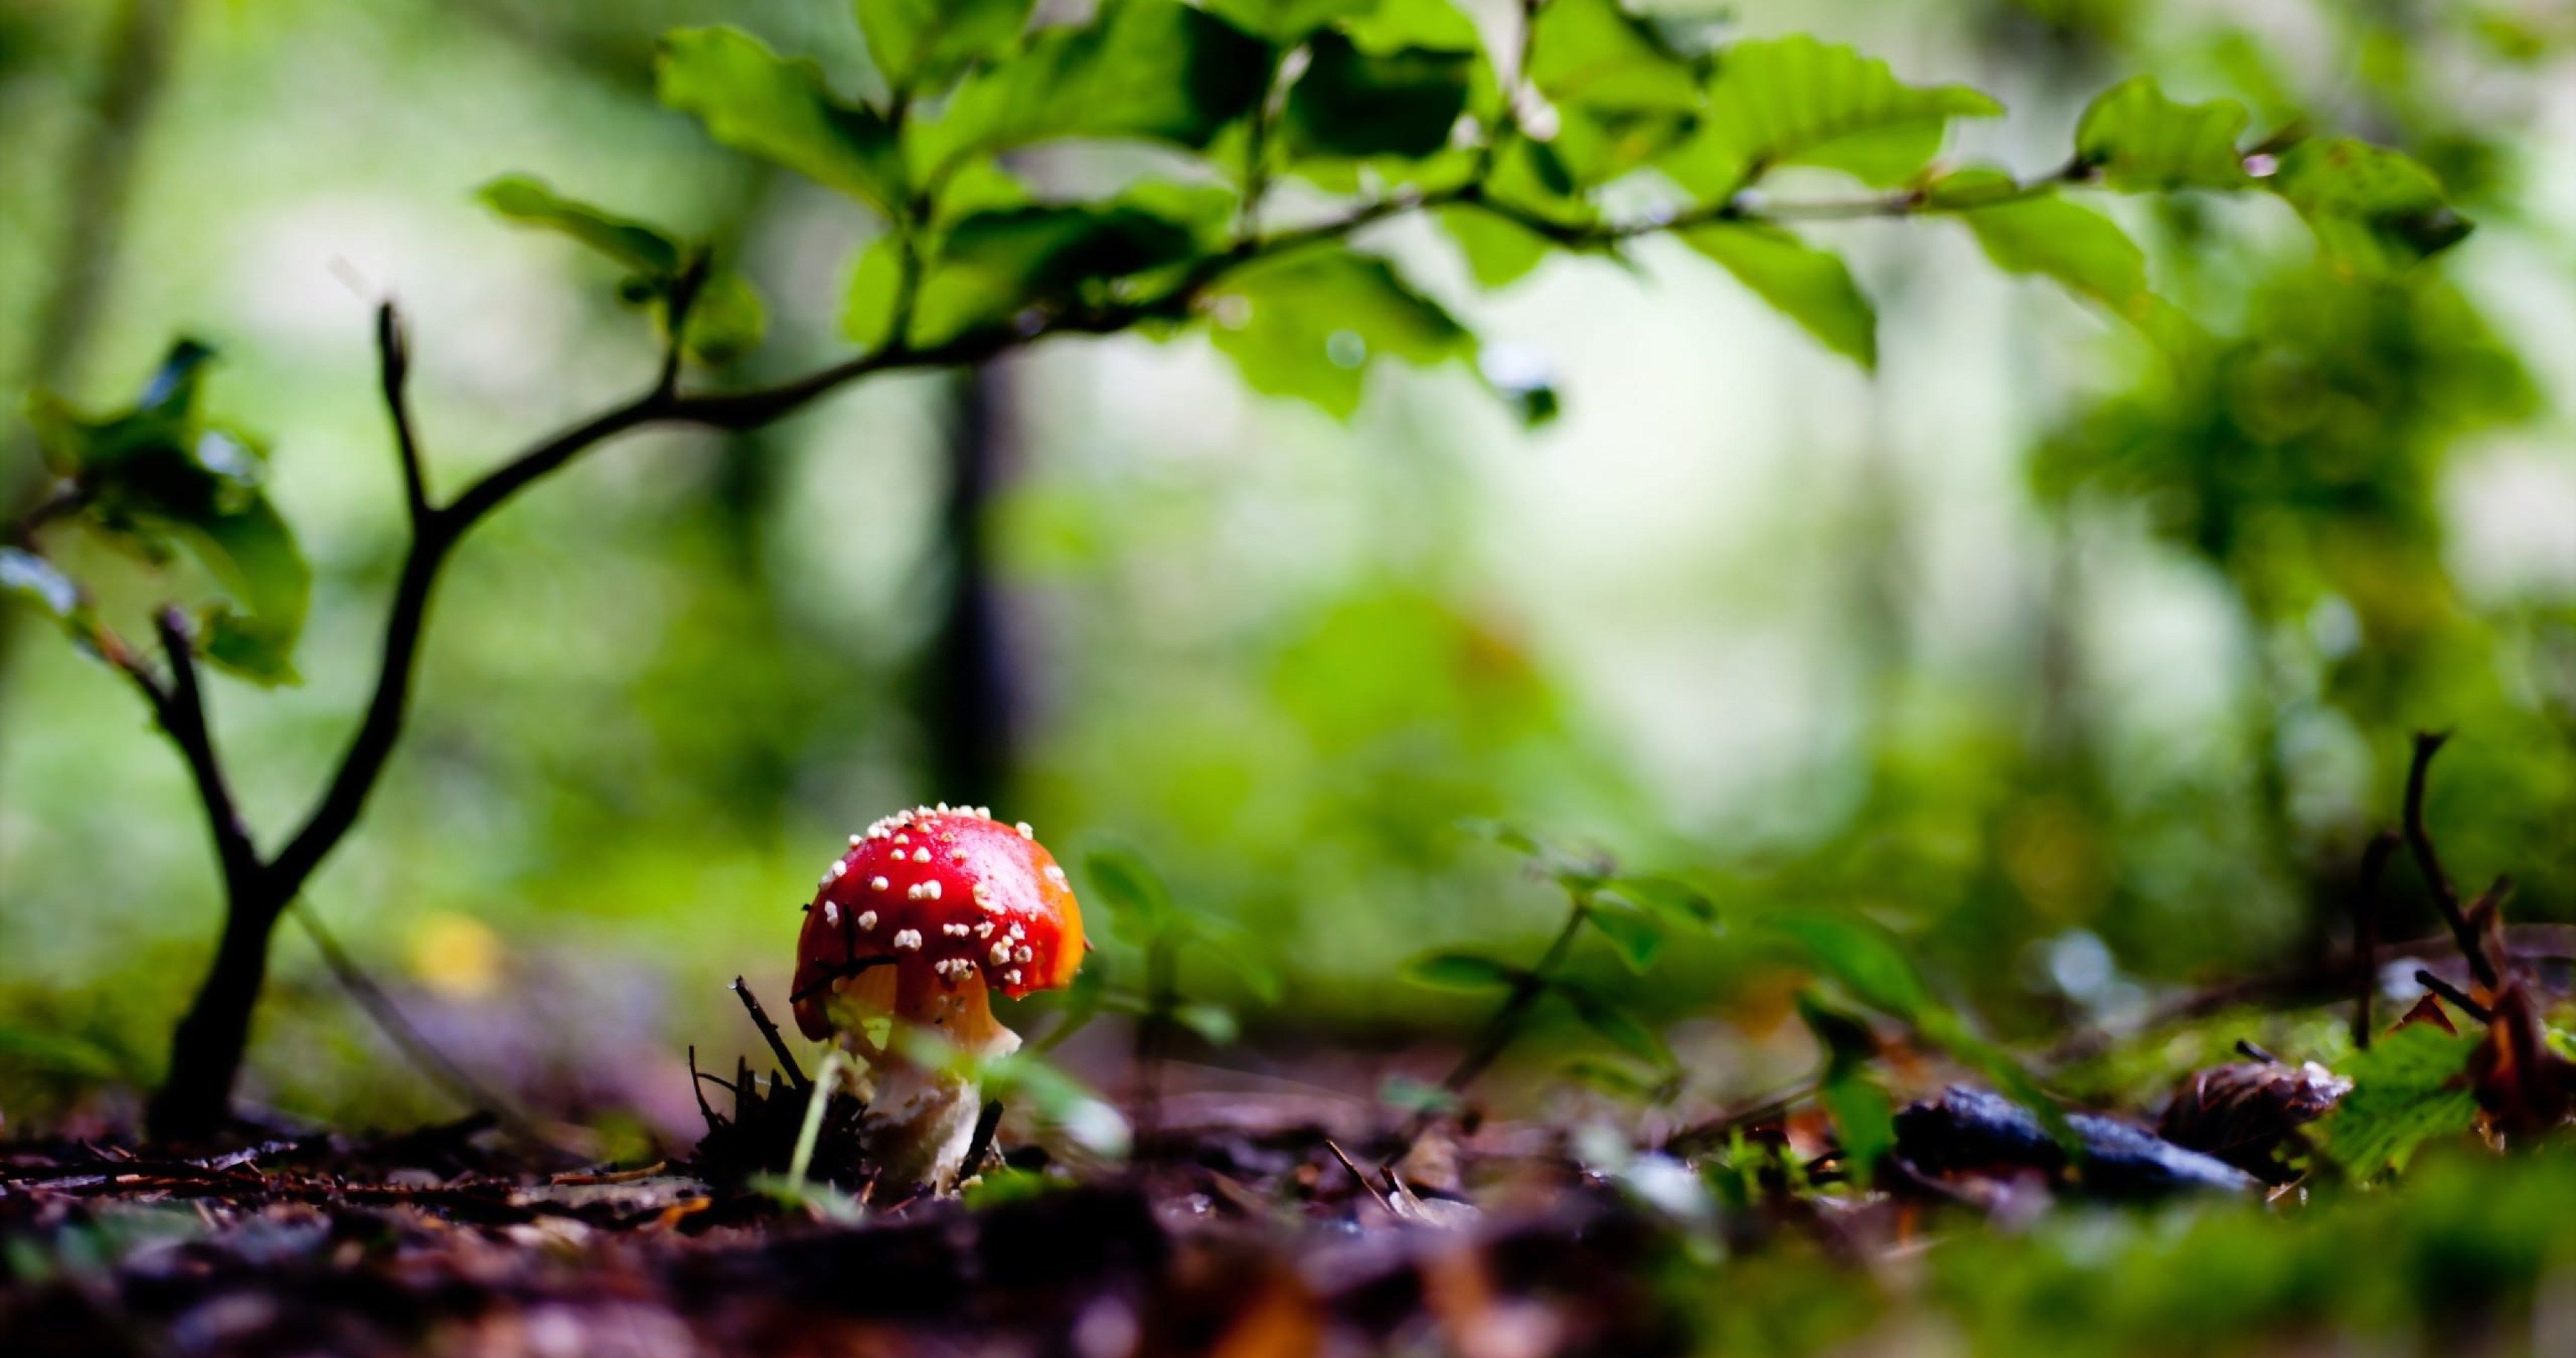 Green Beautiful Nature 4k Ultra Hd Wallpaper Mushroom Wallpaper Mushroom Images Beautiful Nature